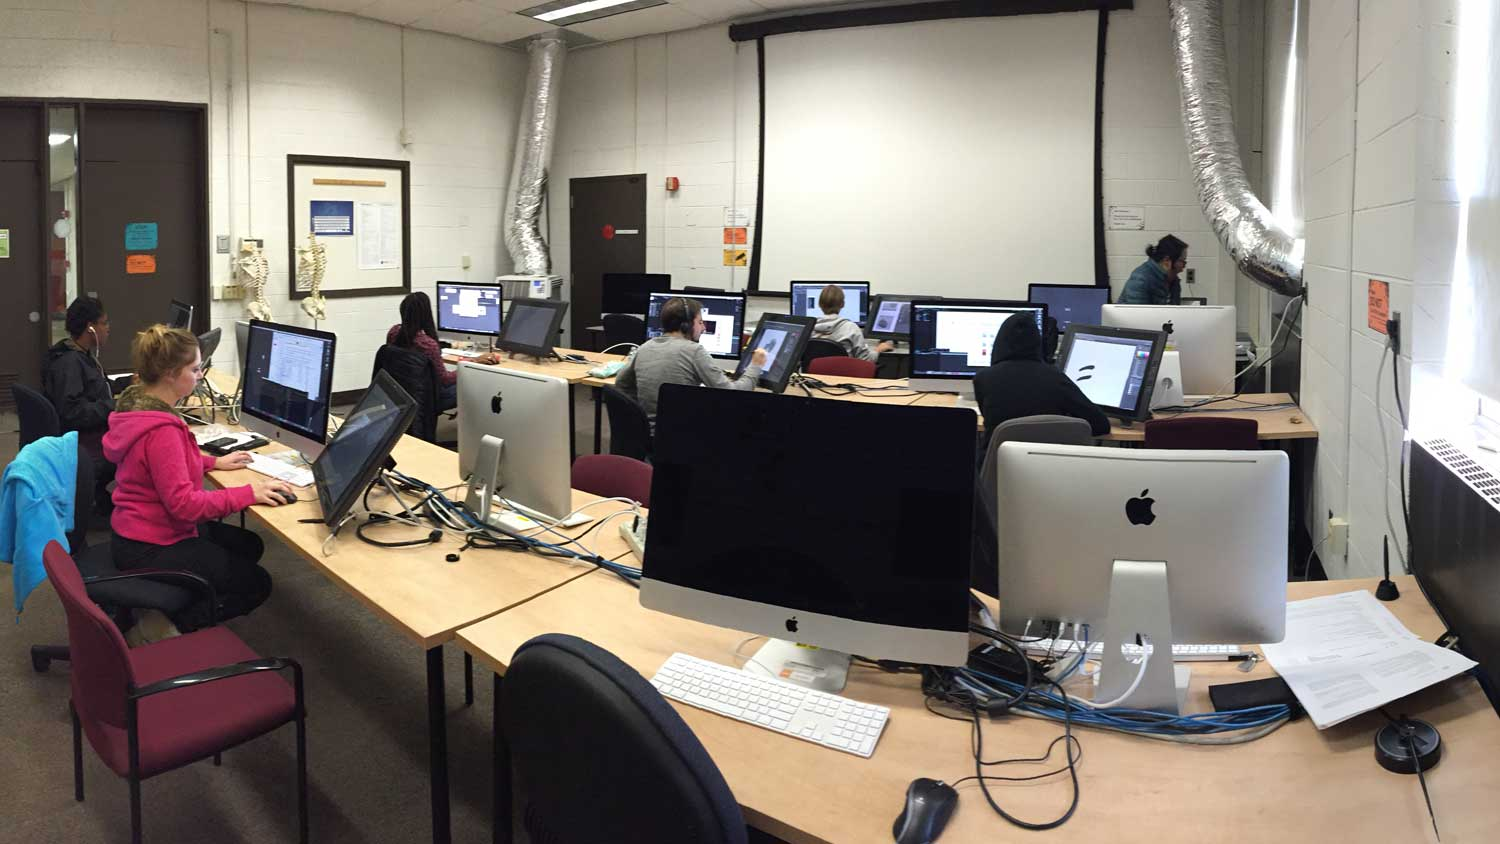 Students working in the 3500 lab